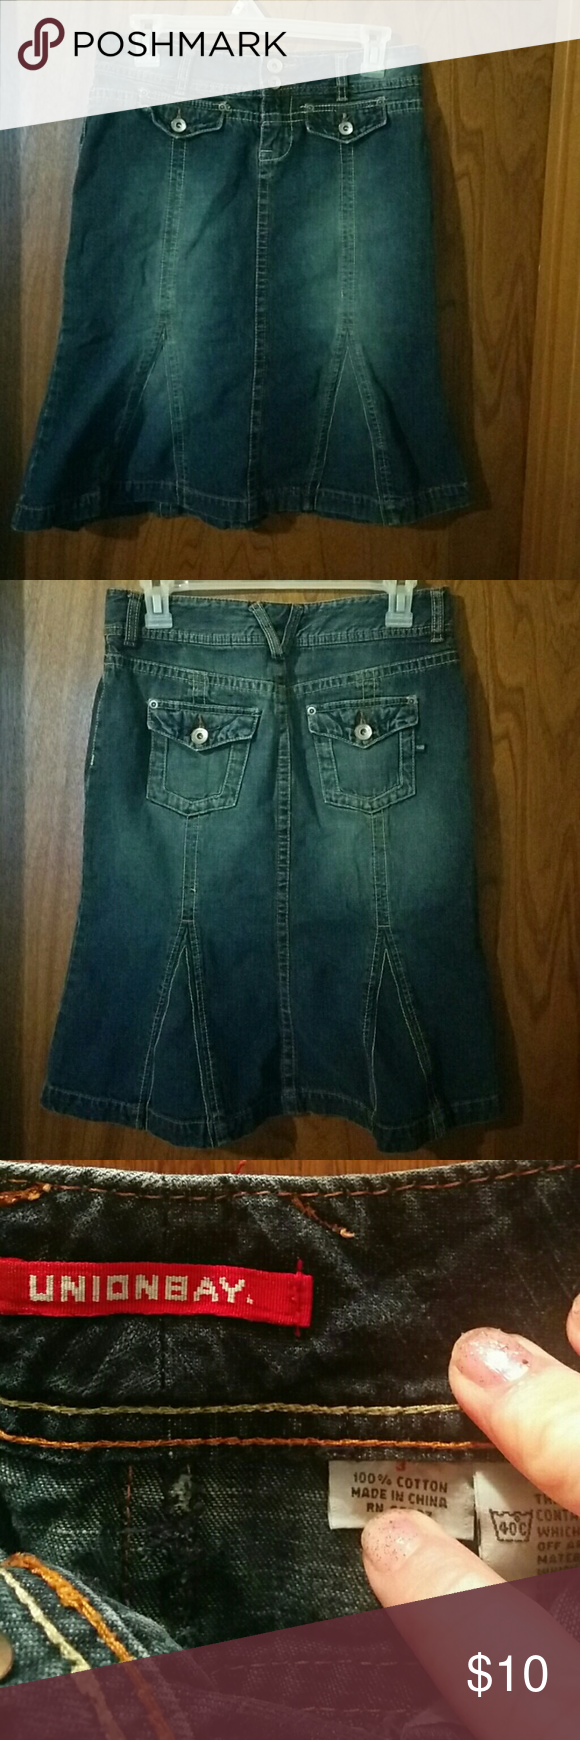 Selling This Unionbay Long Jean Skirt Size 3 Juniors On Poshmark My Username Is